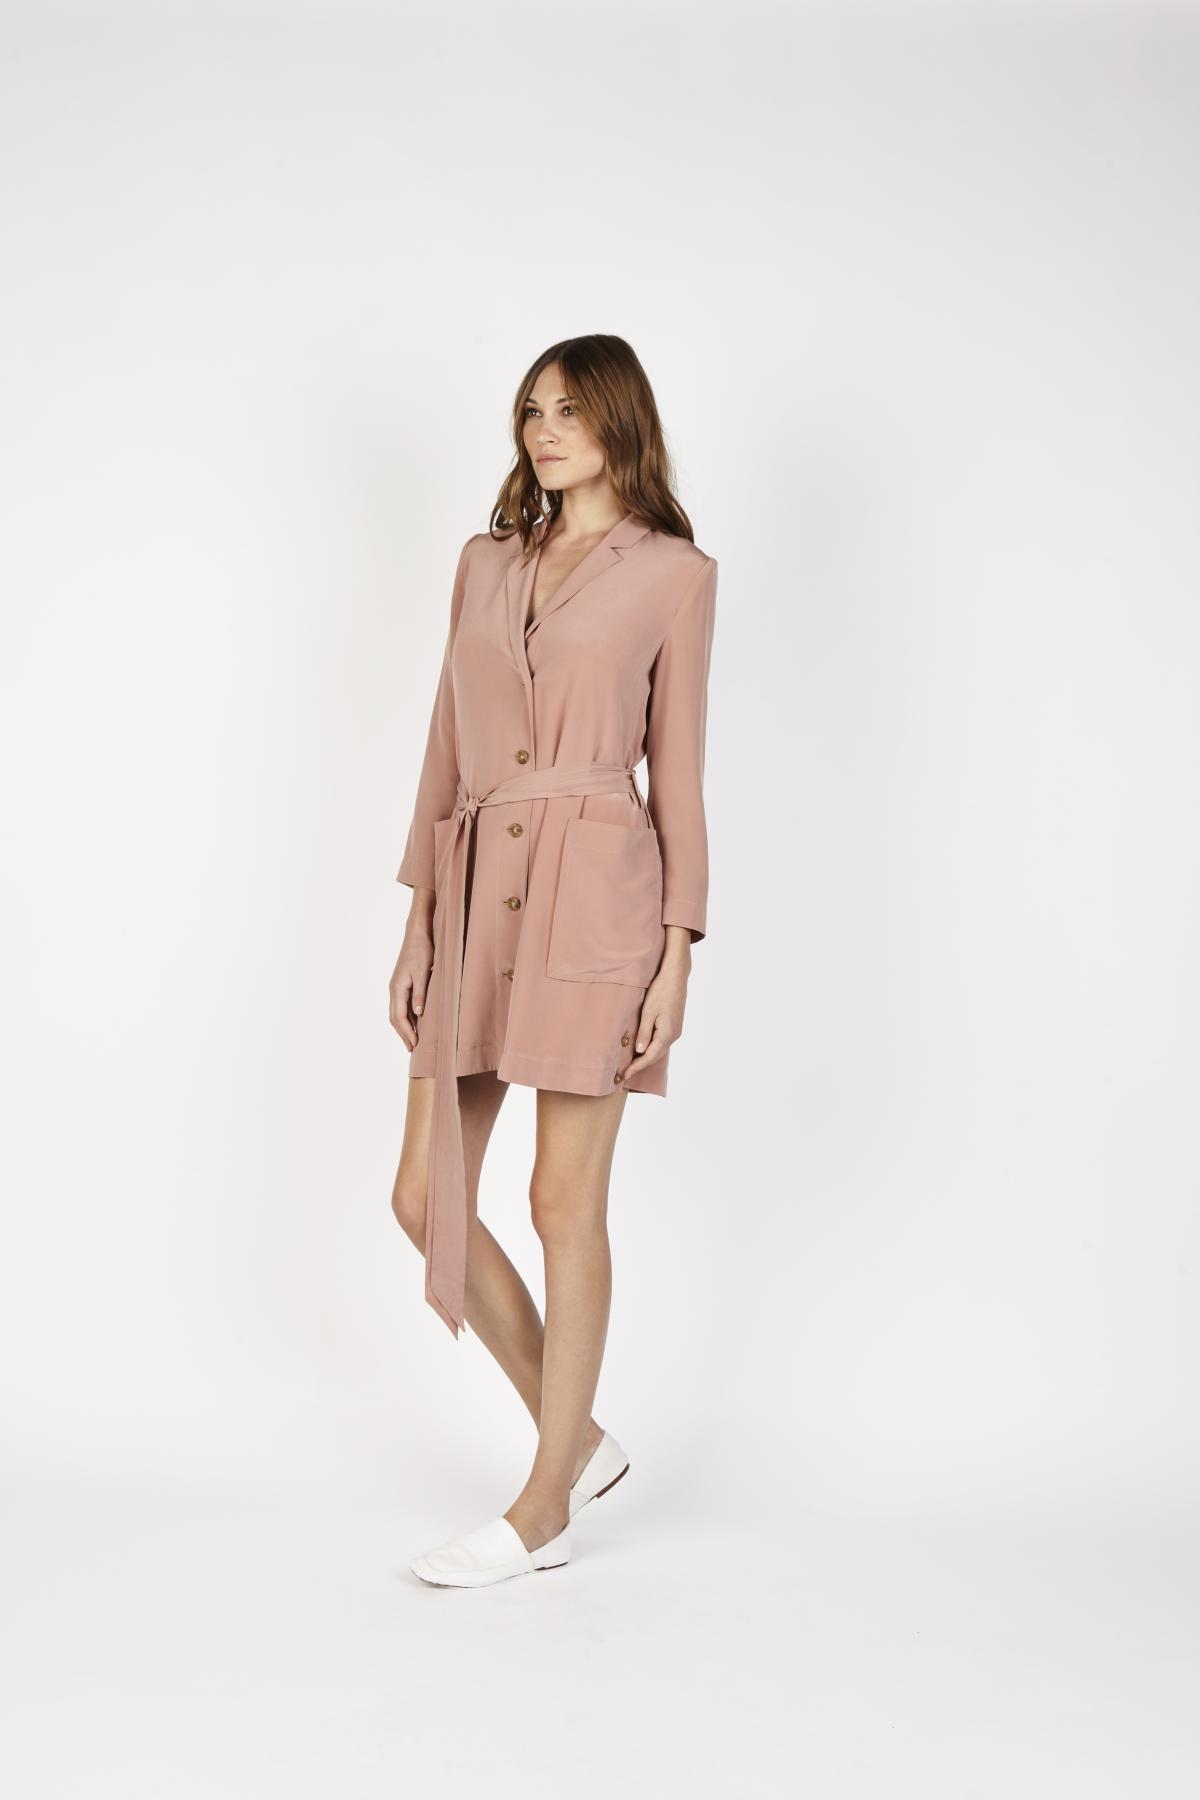 Emory Robe Dress - Customizable Made to Order   frilly